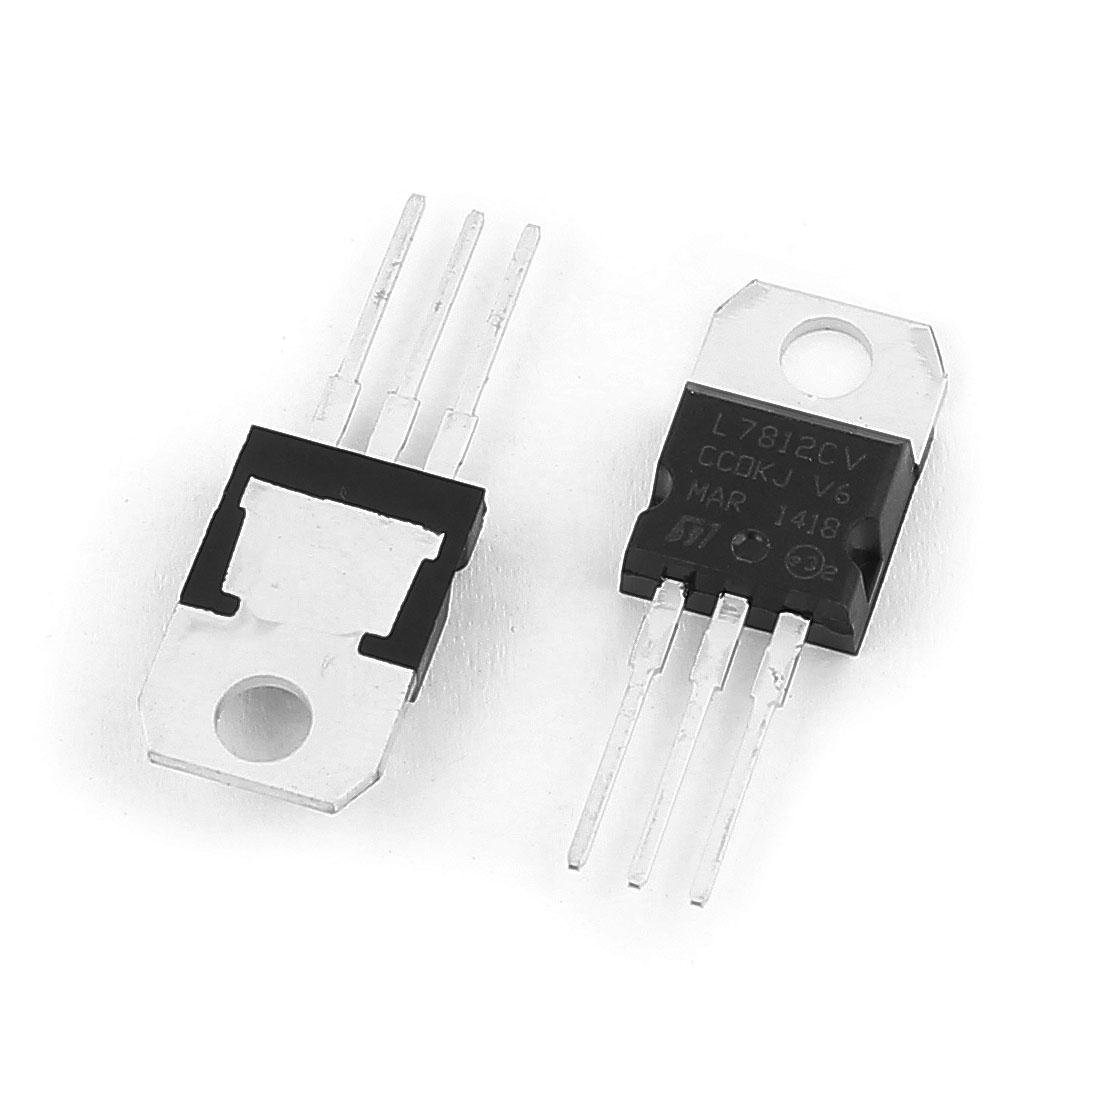 2 Pcs L7812CV TO-220 Package 3 Terminals Negative Voltage Regulator 1.5A 12V